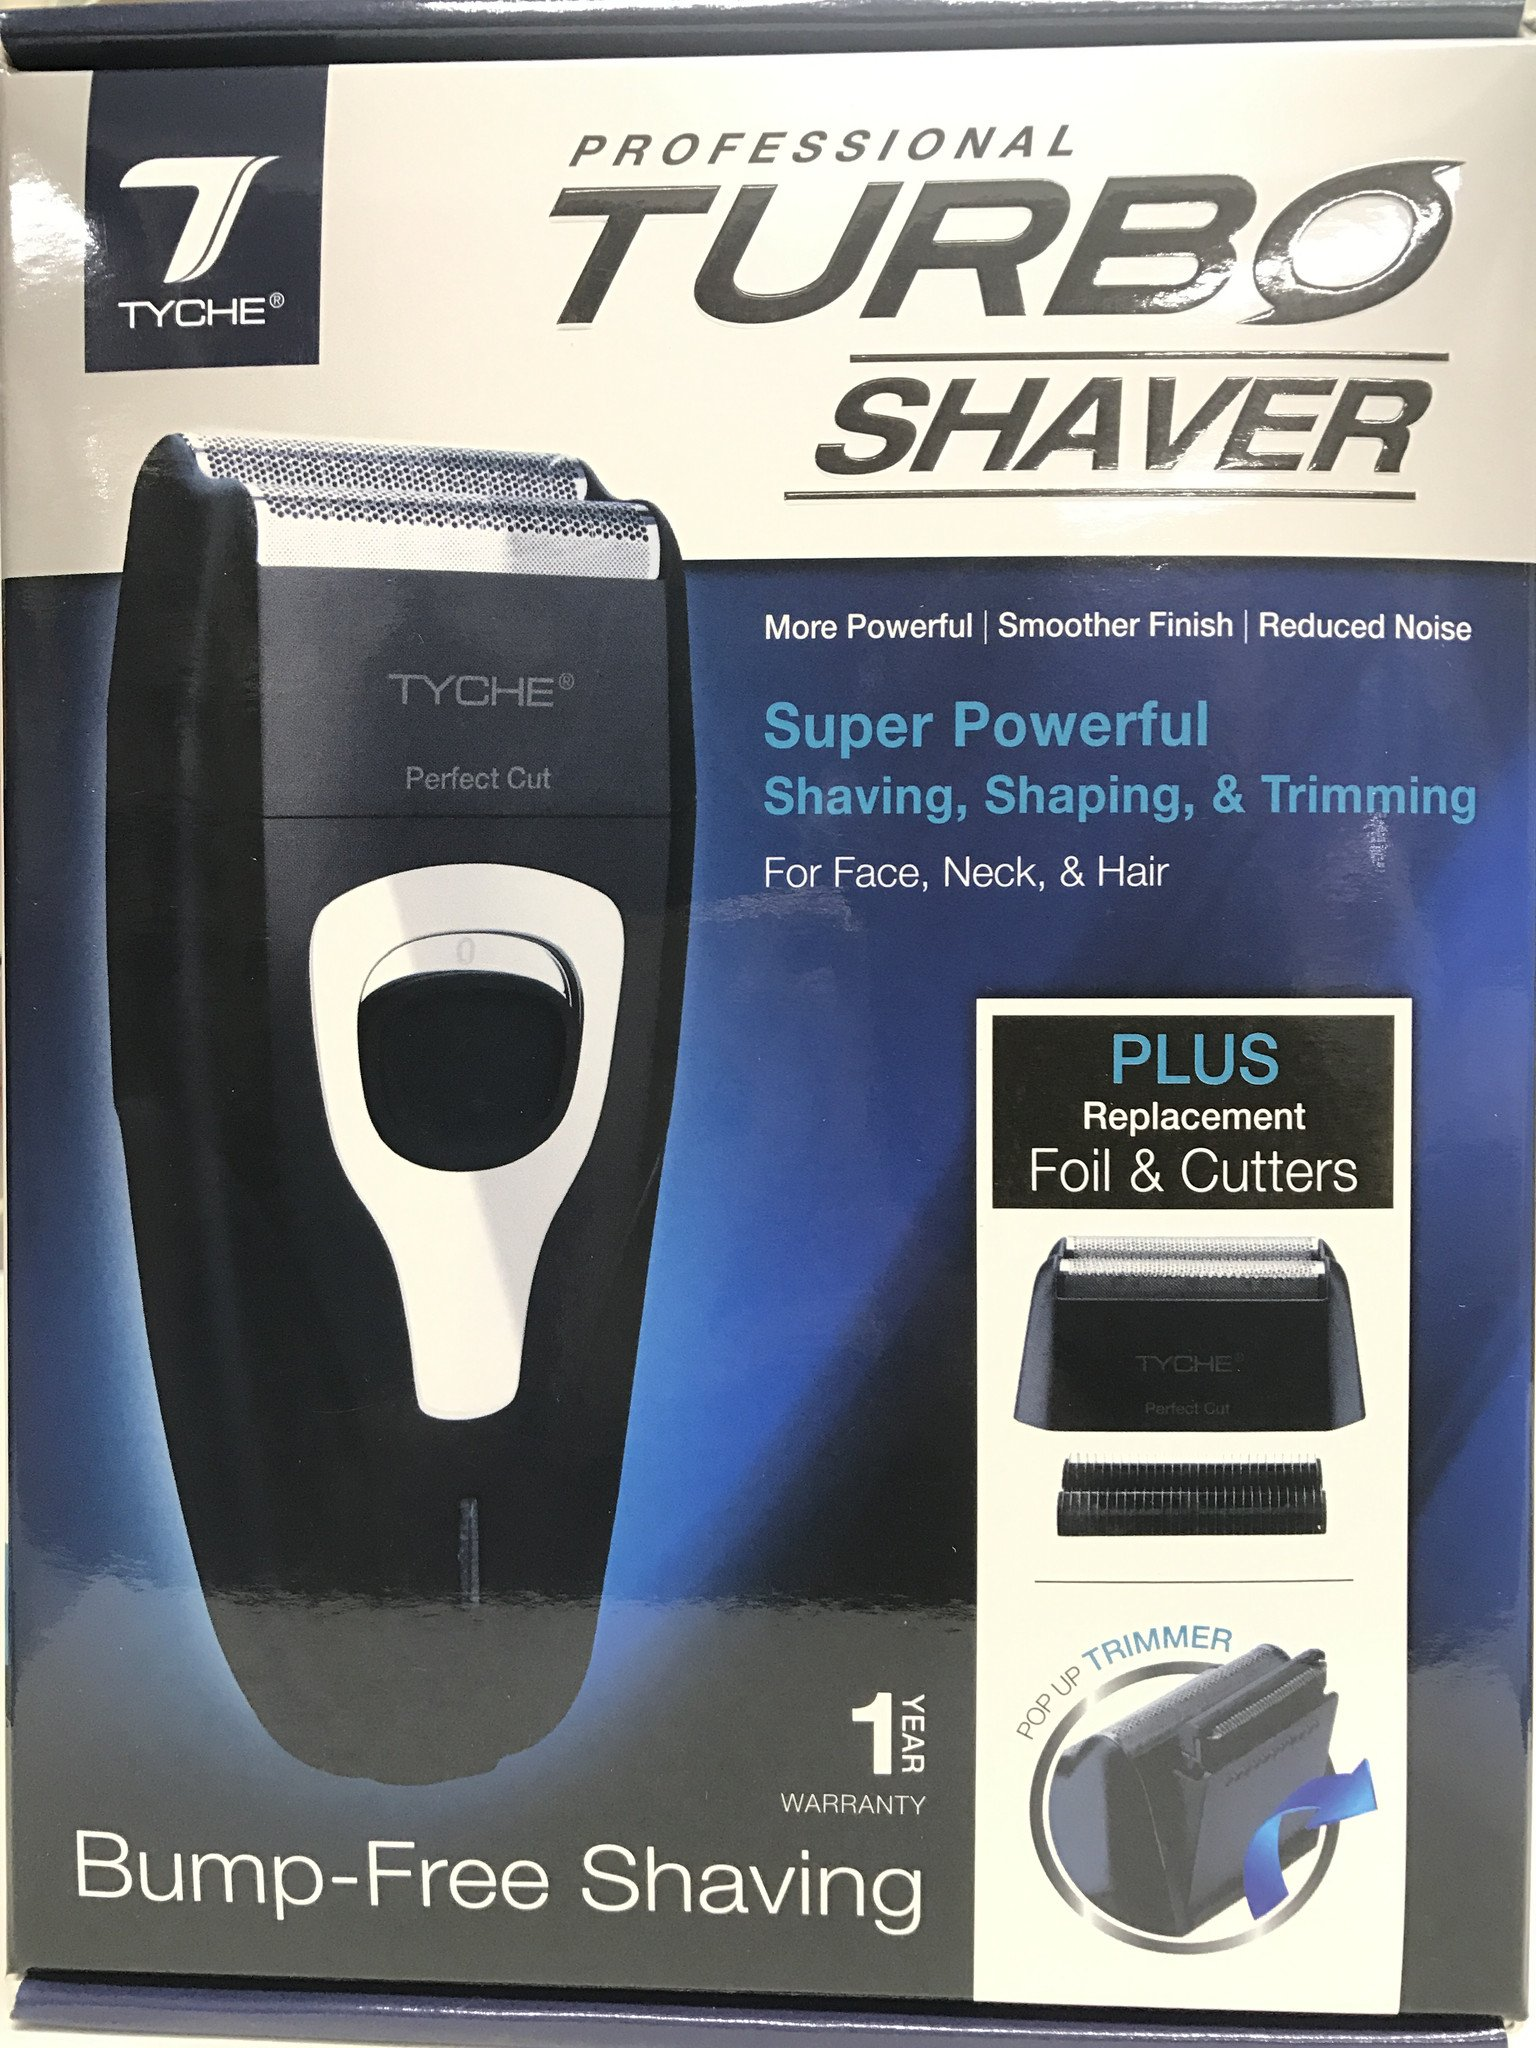 Tyche Turbo Shaver Super Powerful shaving, shaping & trimming THC07